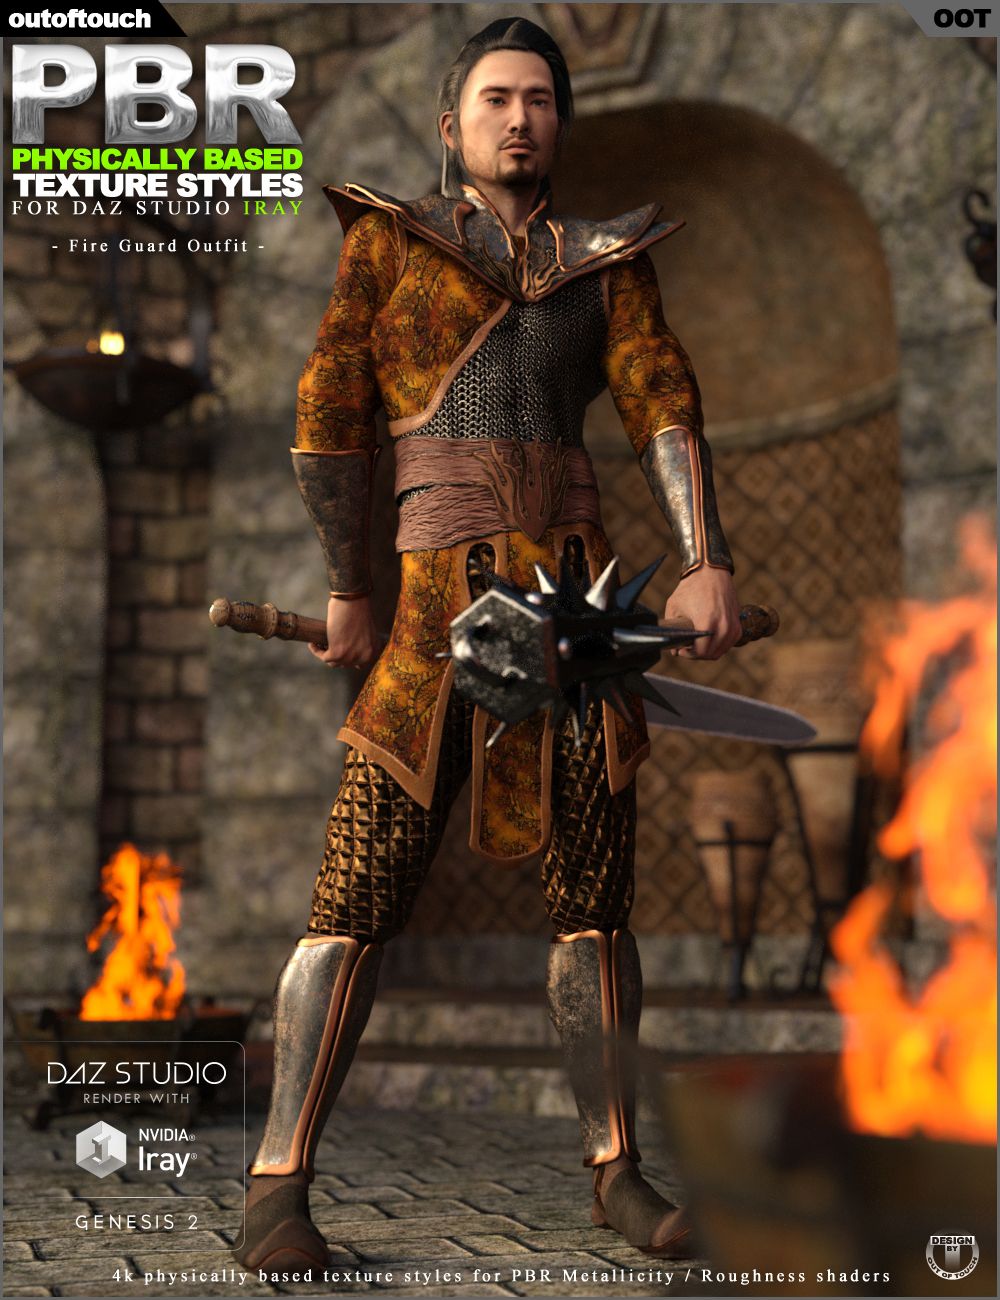 OOT PBR Texture Styles for Fire Guard Outfitbyoutoftouch()